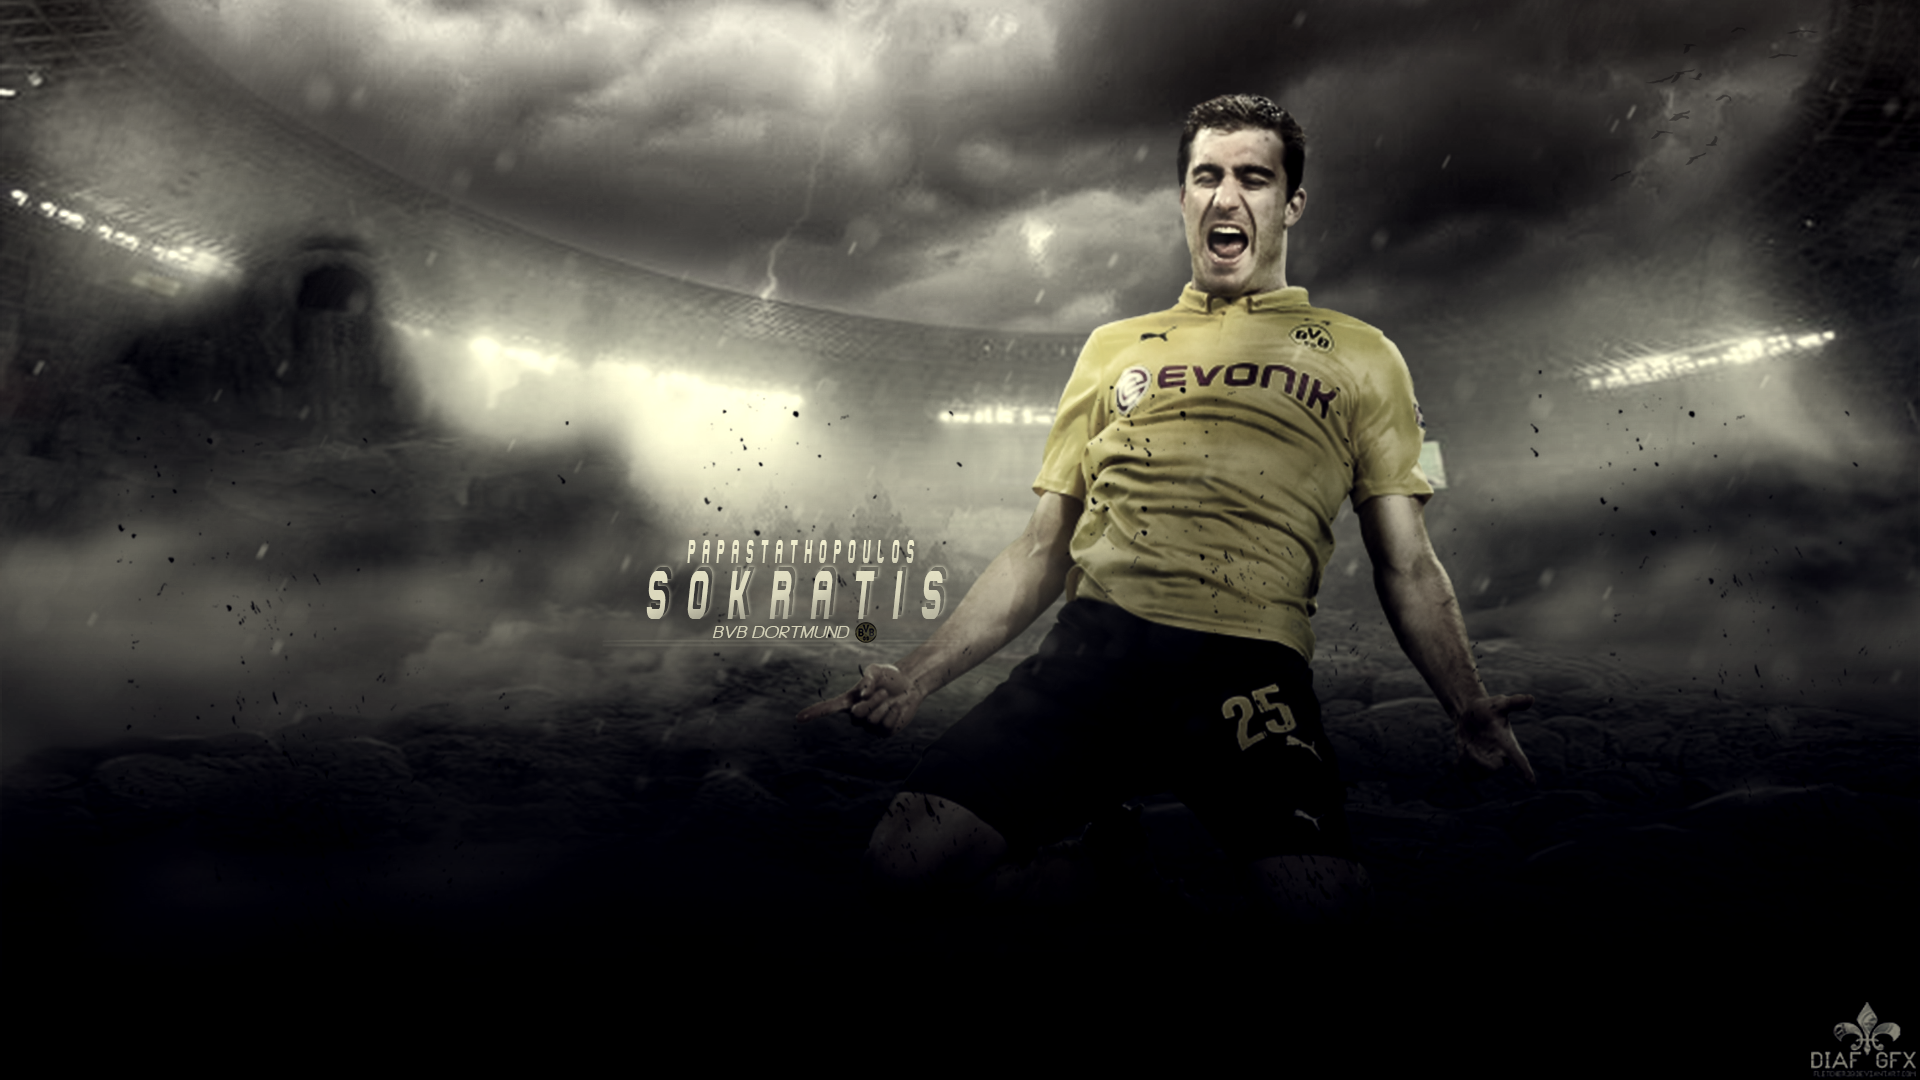 Papastathopoulos Sokratis Wallpaper By FLETCHER39 On